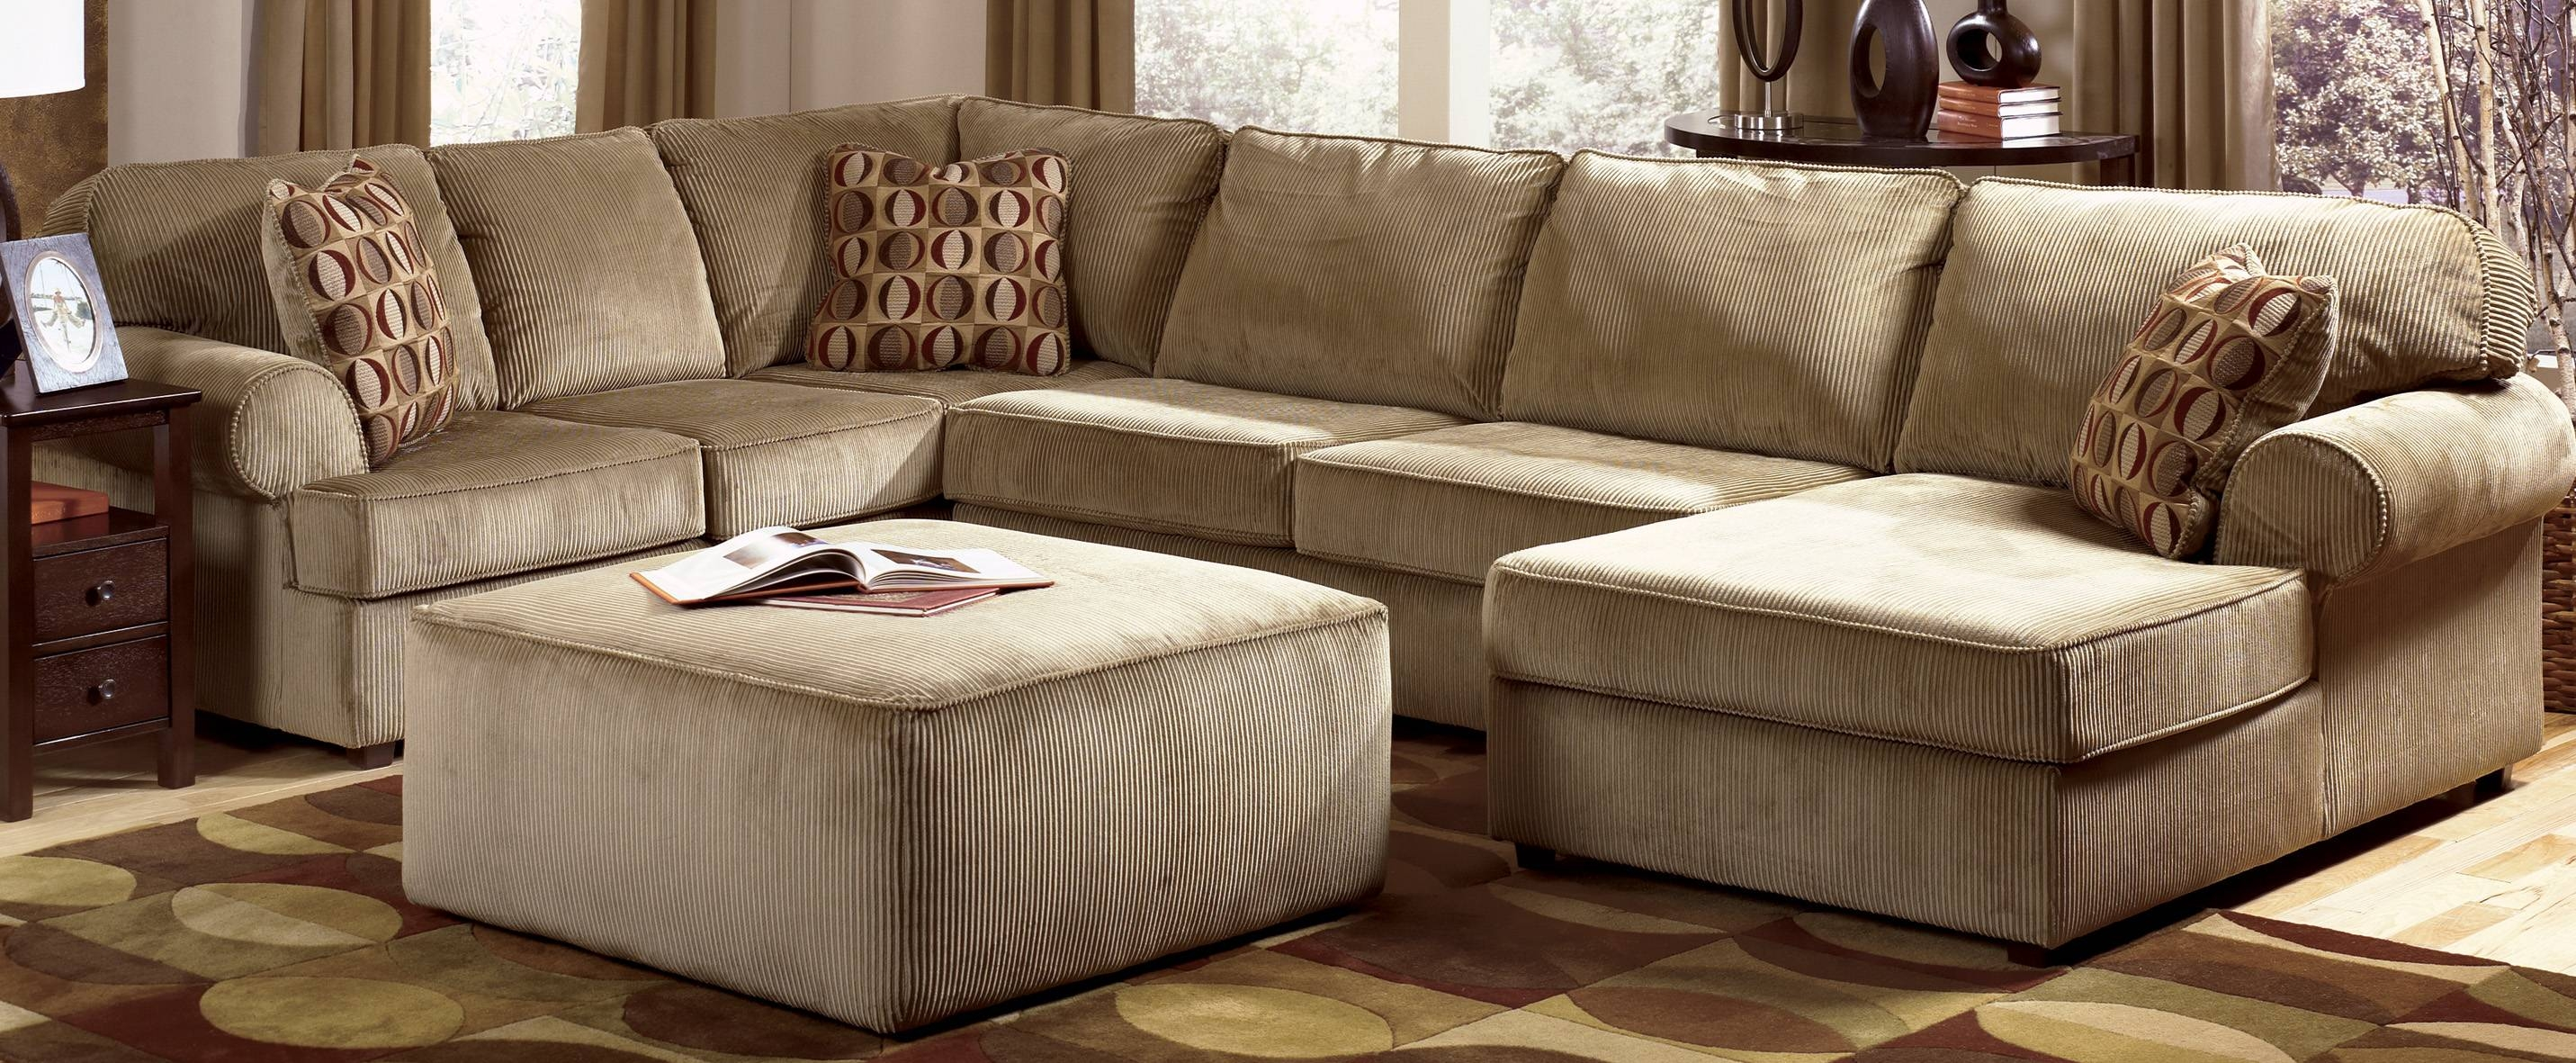 The Best Sectional Sofa With Ottoman